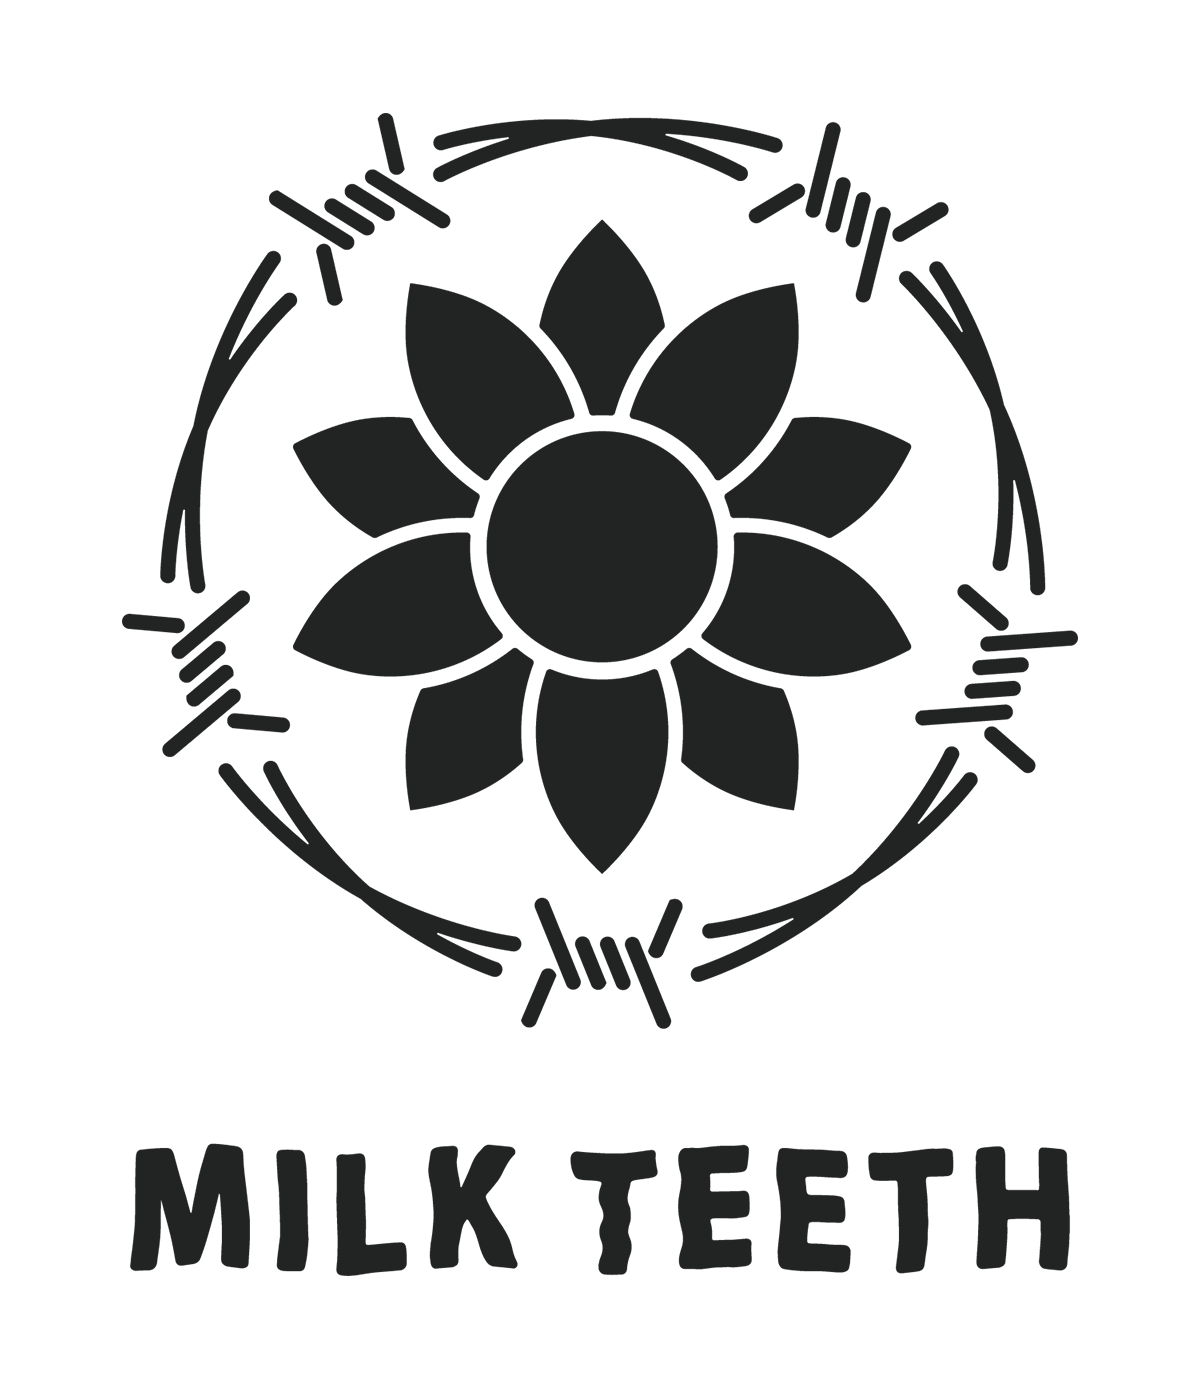 Milk Teeth logo